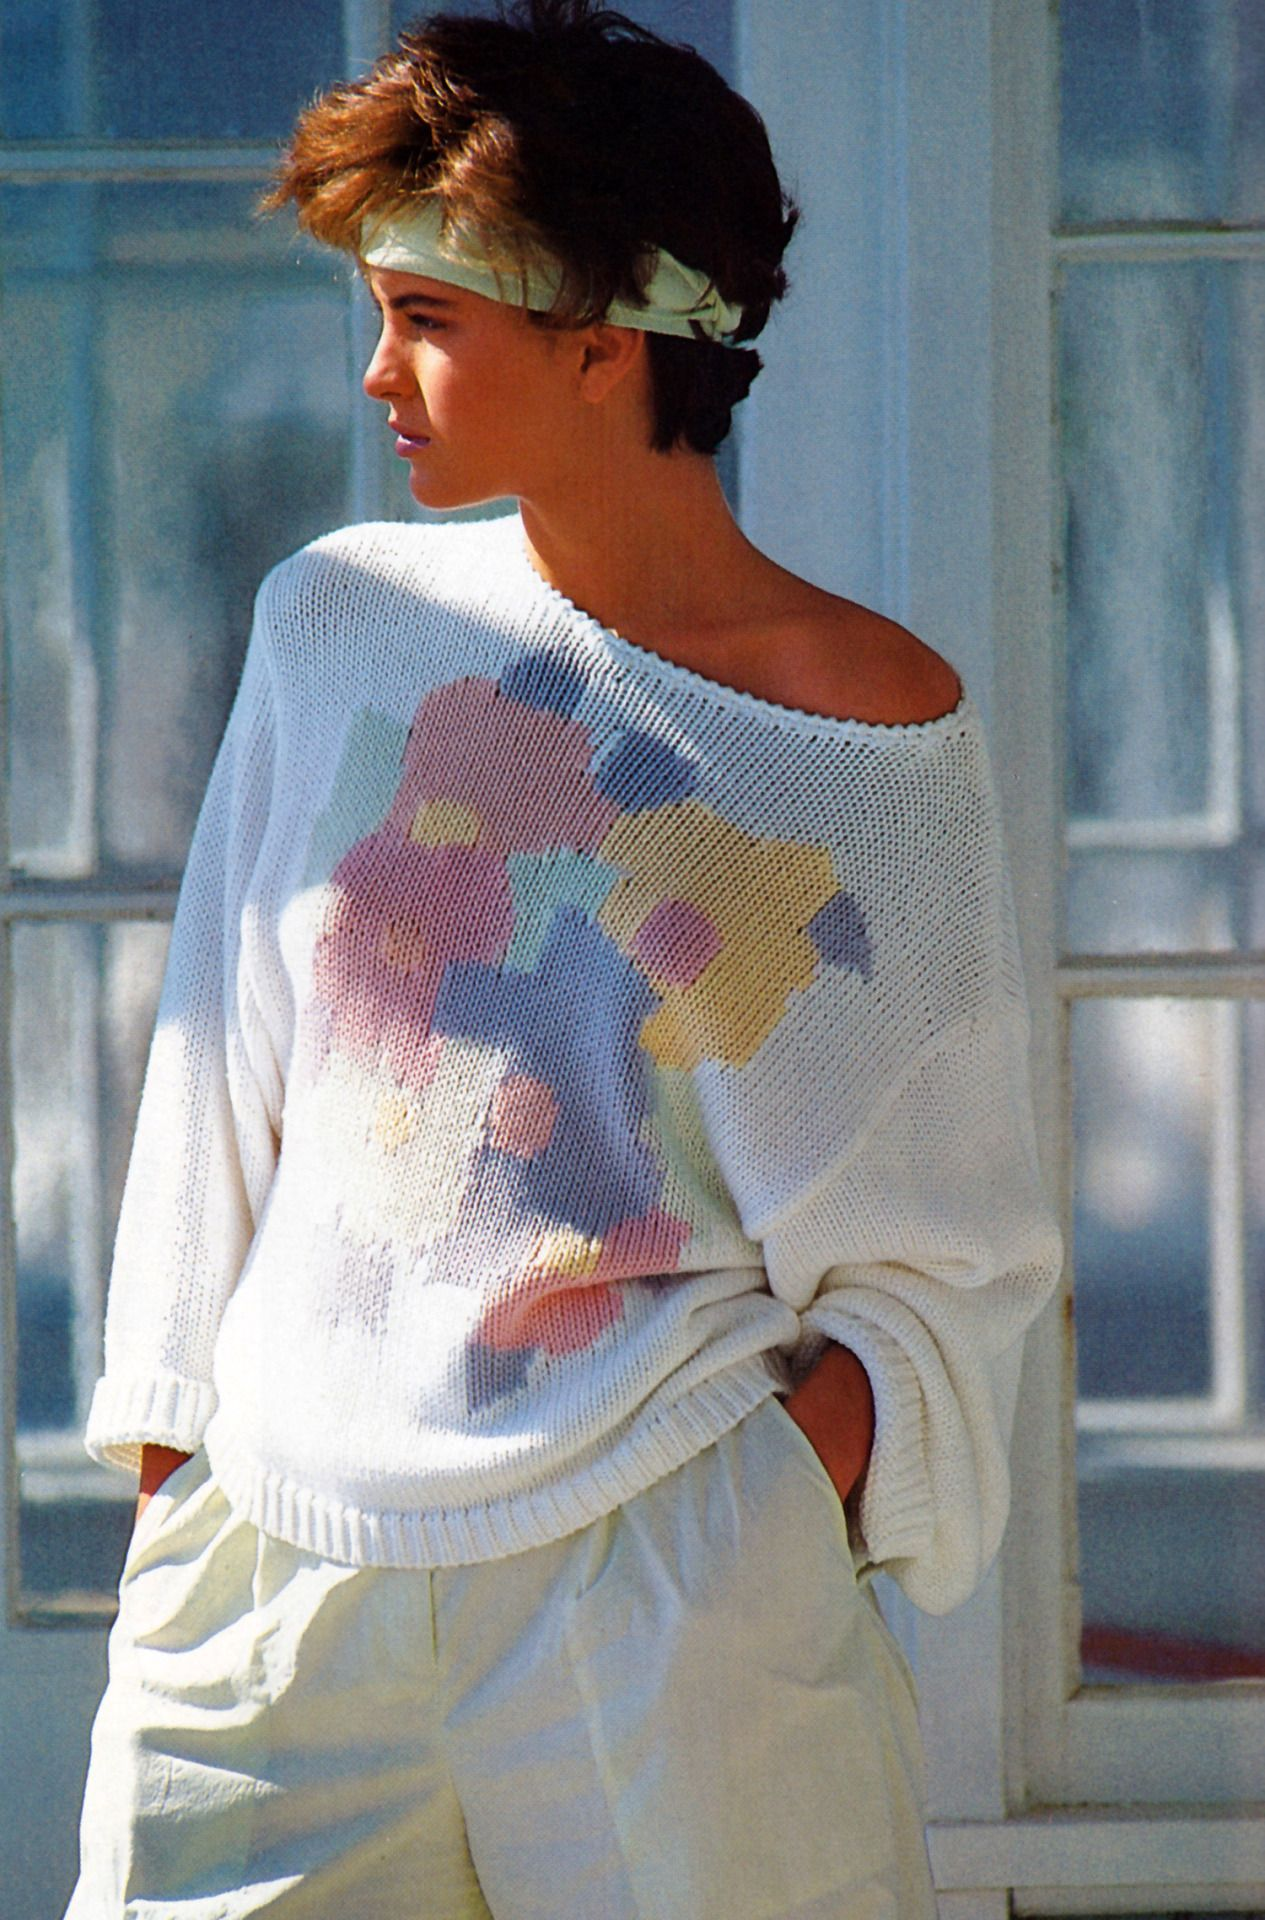 80s Vintage Clothing In The Uk Just Got Easier: 80s Girl Pastel Sweater Mondi American Vogue March 1985